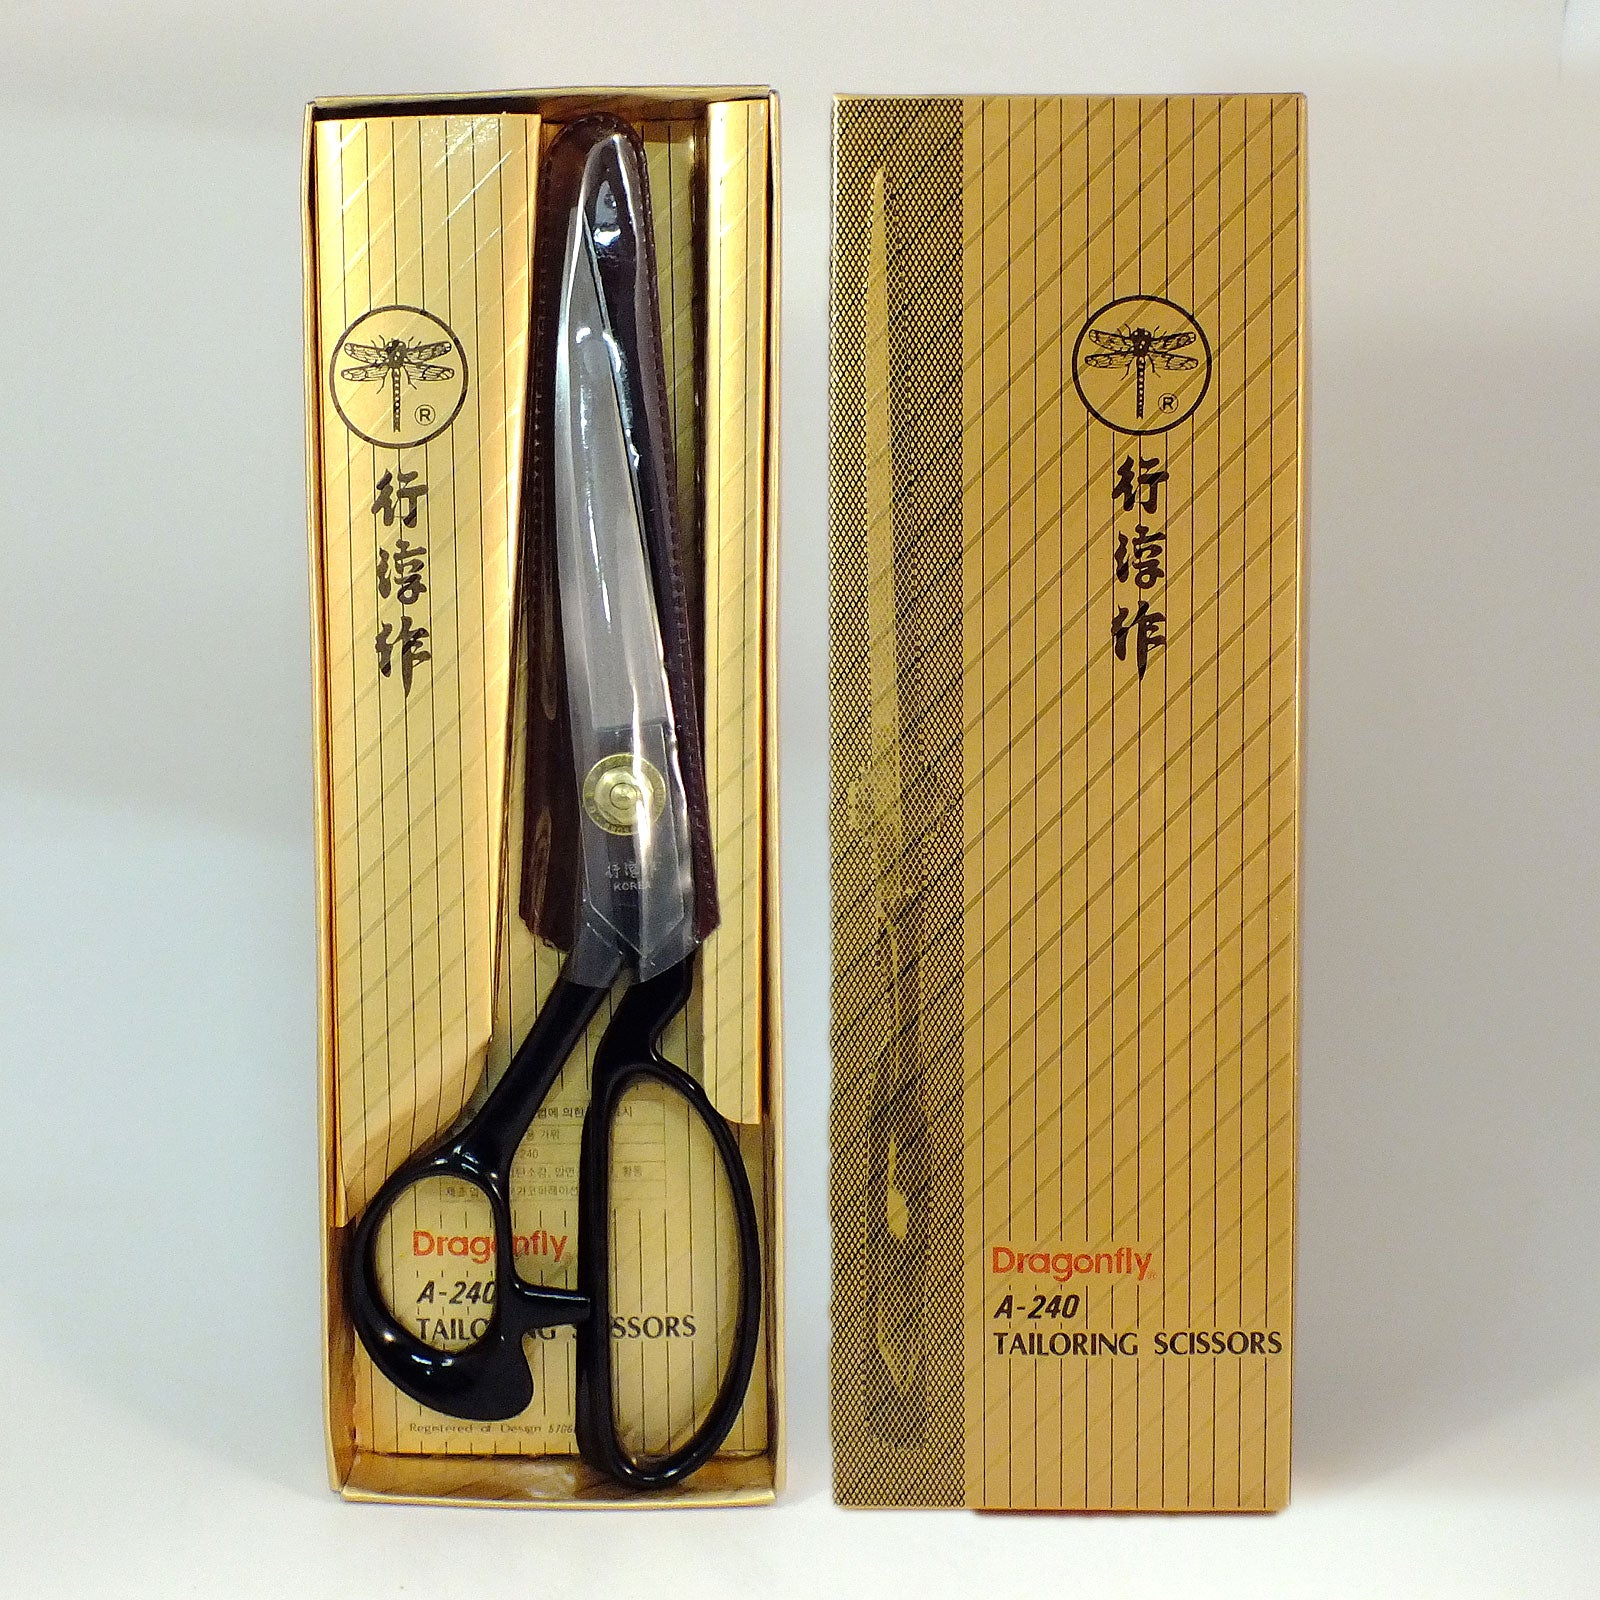 Dragonfly Tailoring Shears - A240